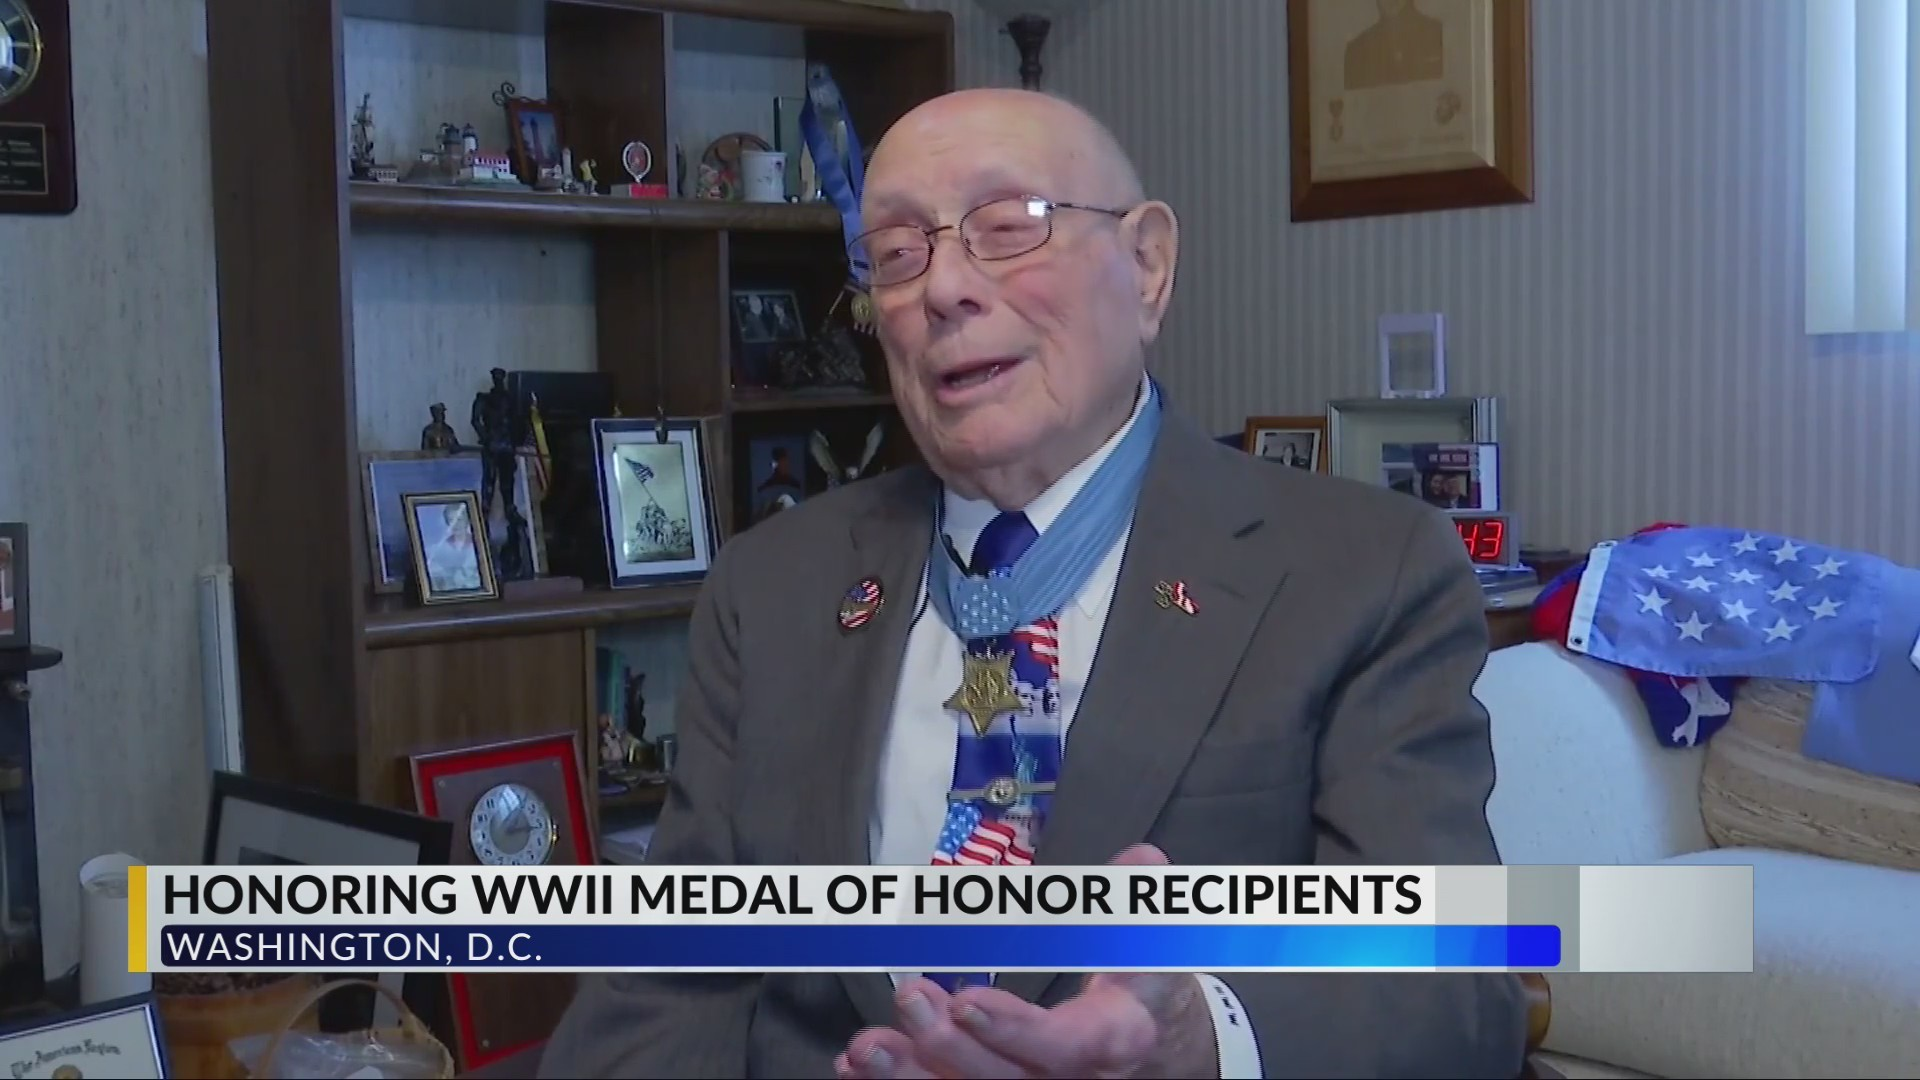 Bill Aims to Honor Last Living WWII Medal of Honor Recipient